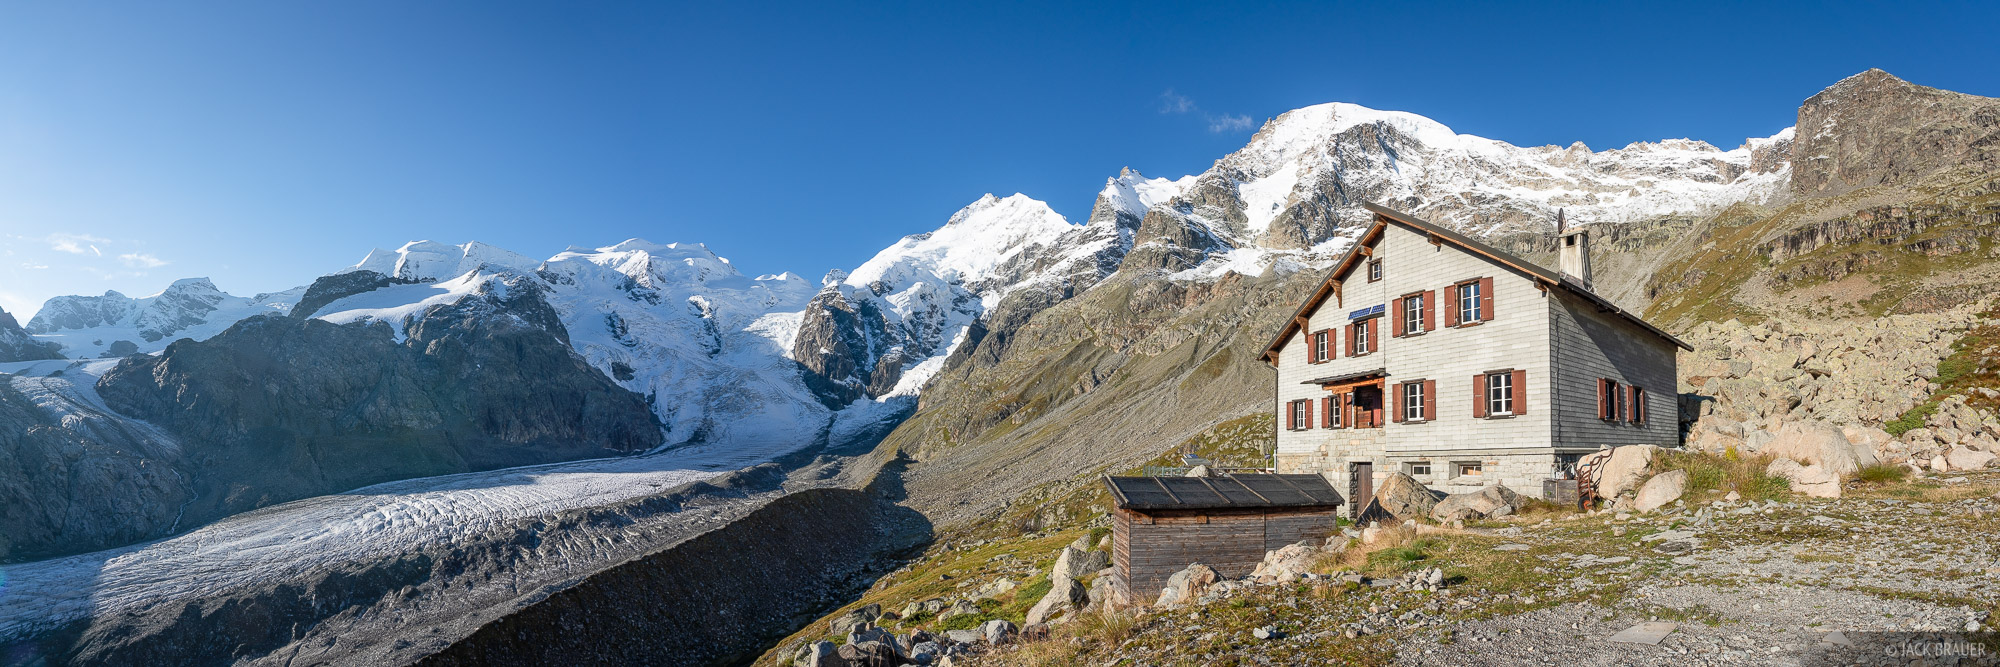 Bernina Range, Boval Hut, Piz Bernina, Piz Palü, Piz Zupo, Rhaetian Alps, Switzerland, Vadret da Morteratsch, hut, photo